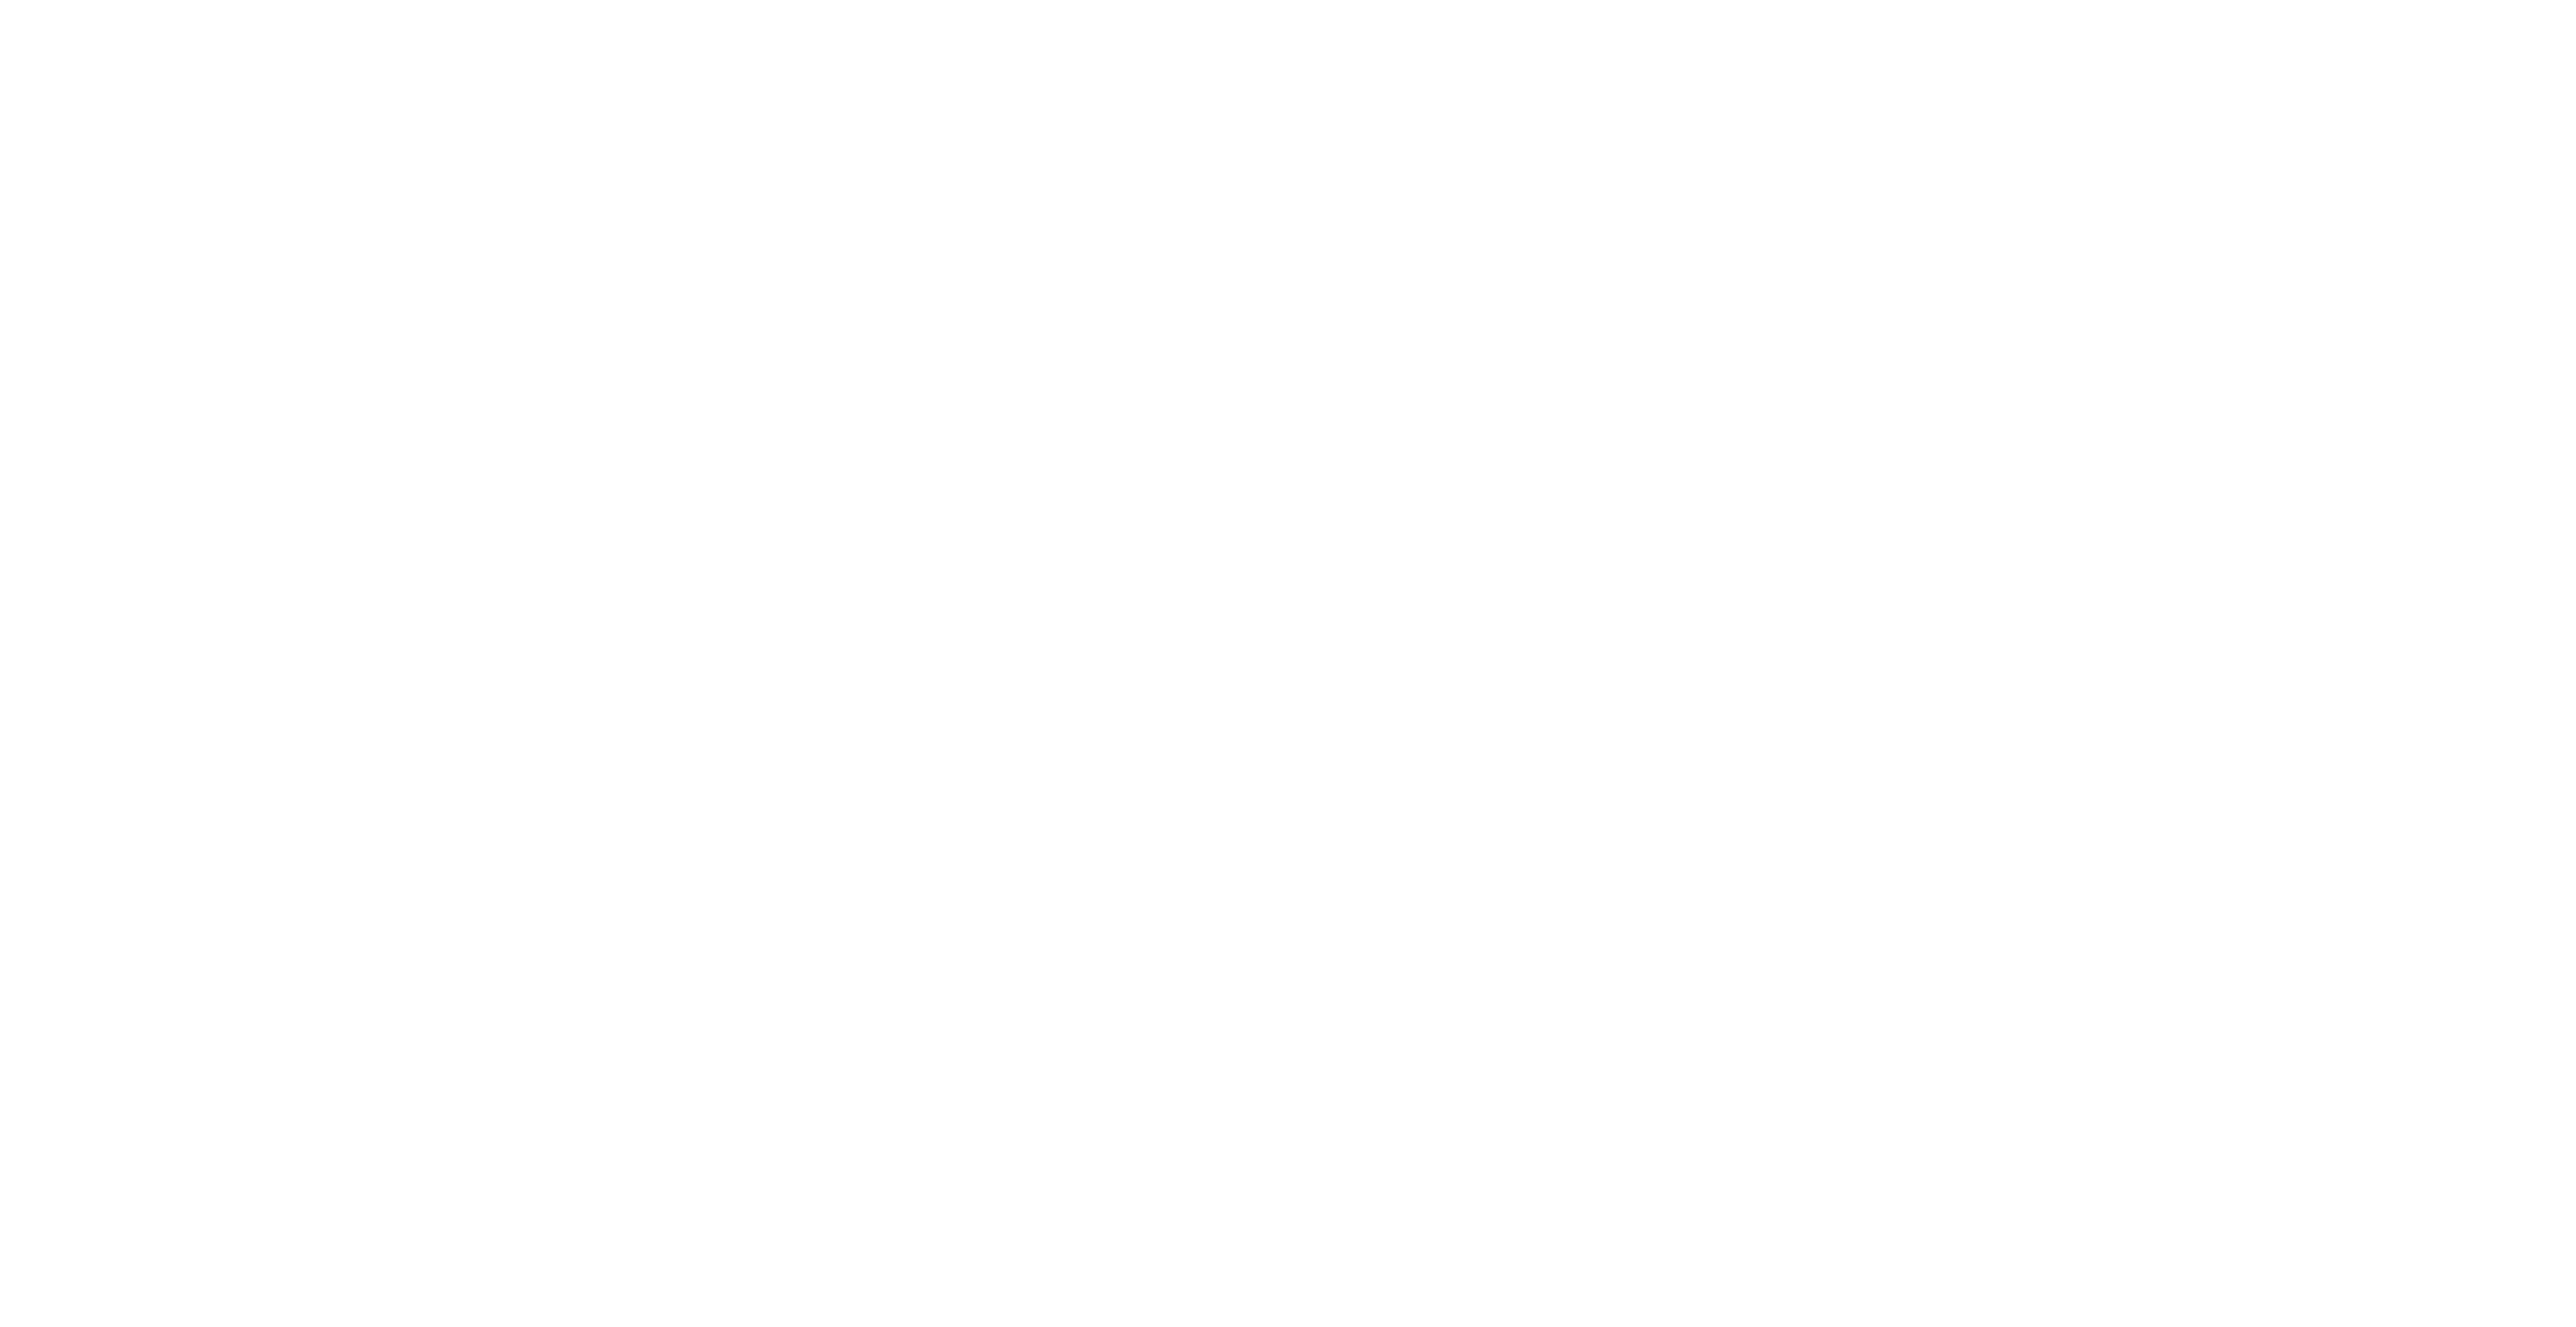 jh Interior Design Studio